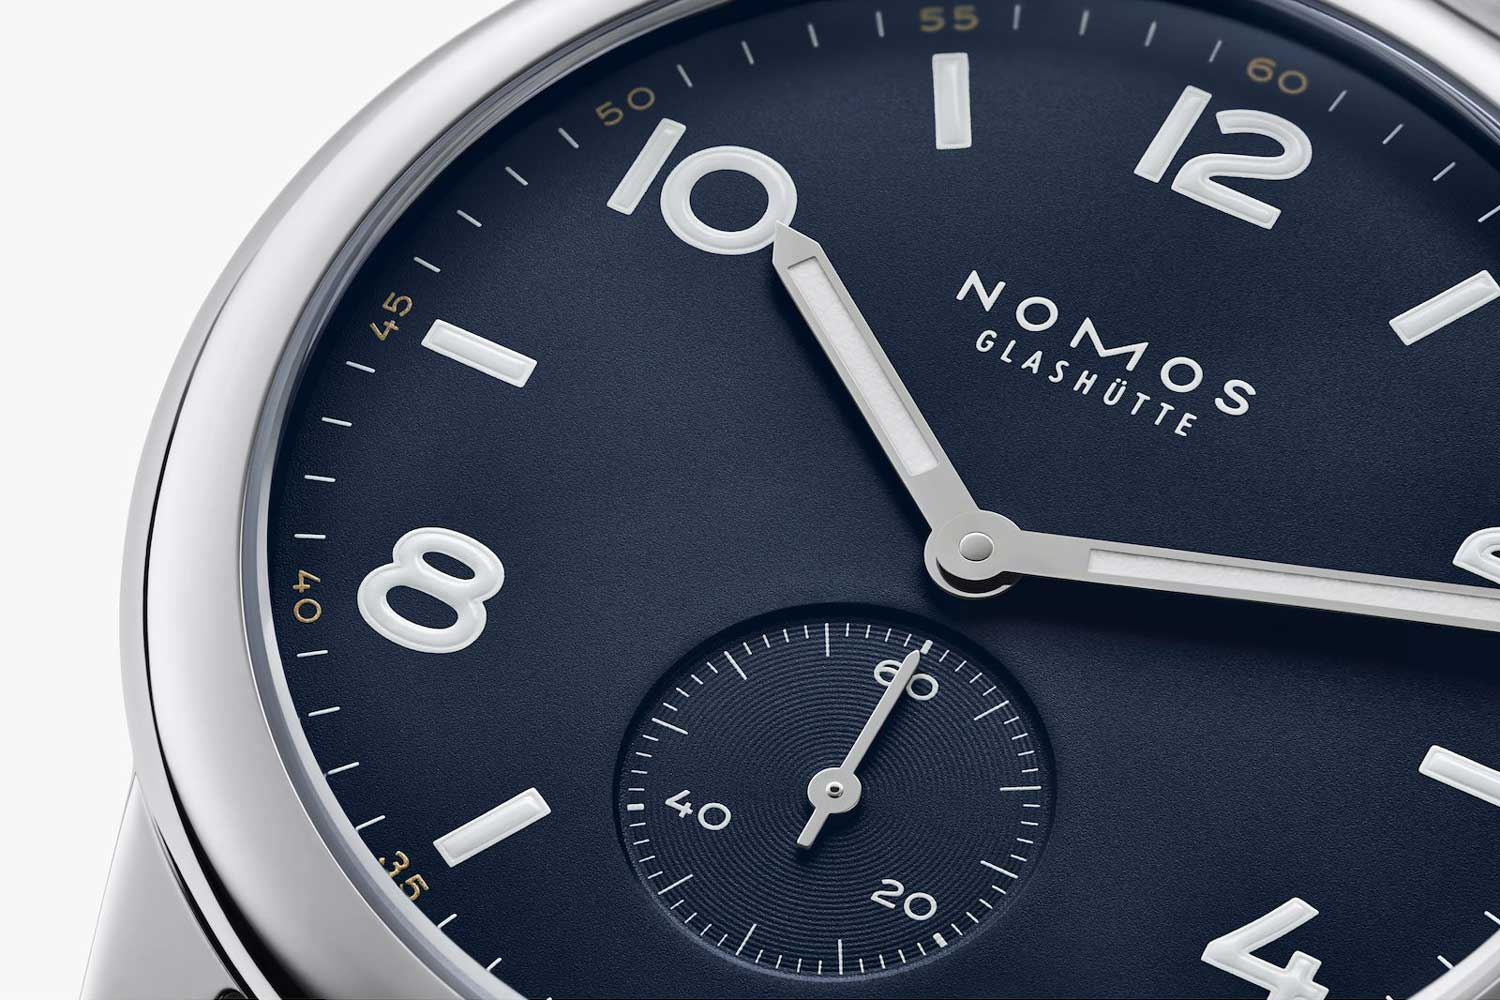 The Club Automatic has a clean, harmonious dial with optimal legibility.